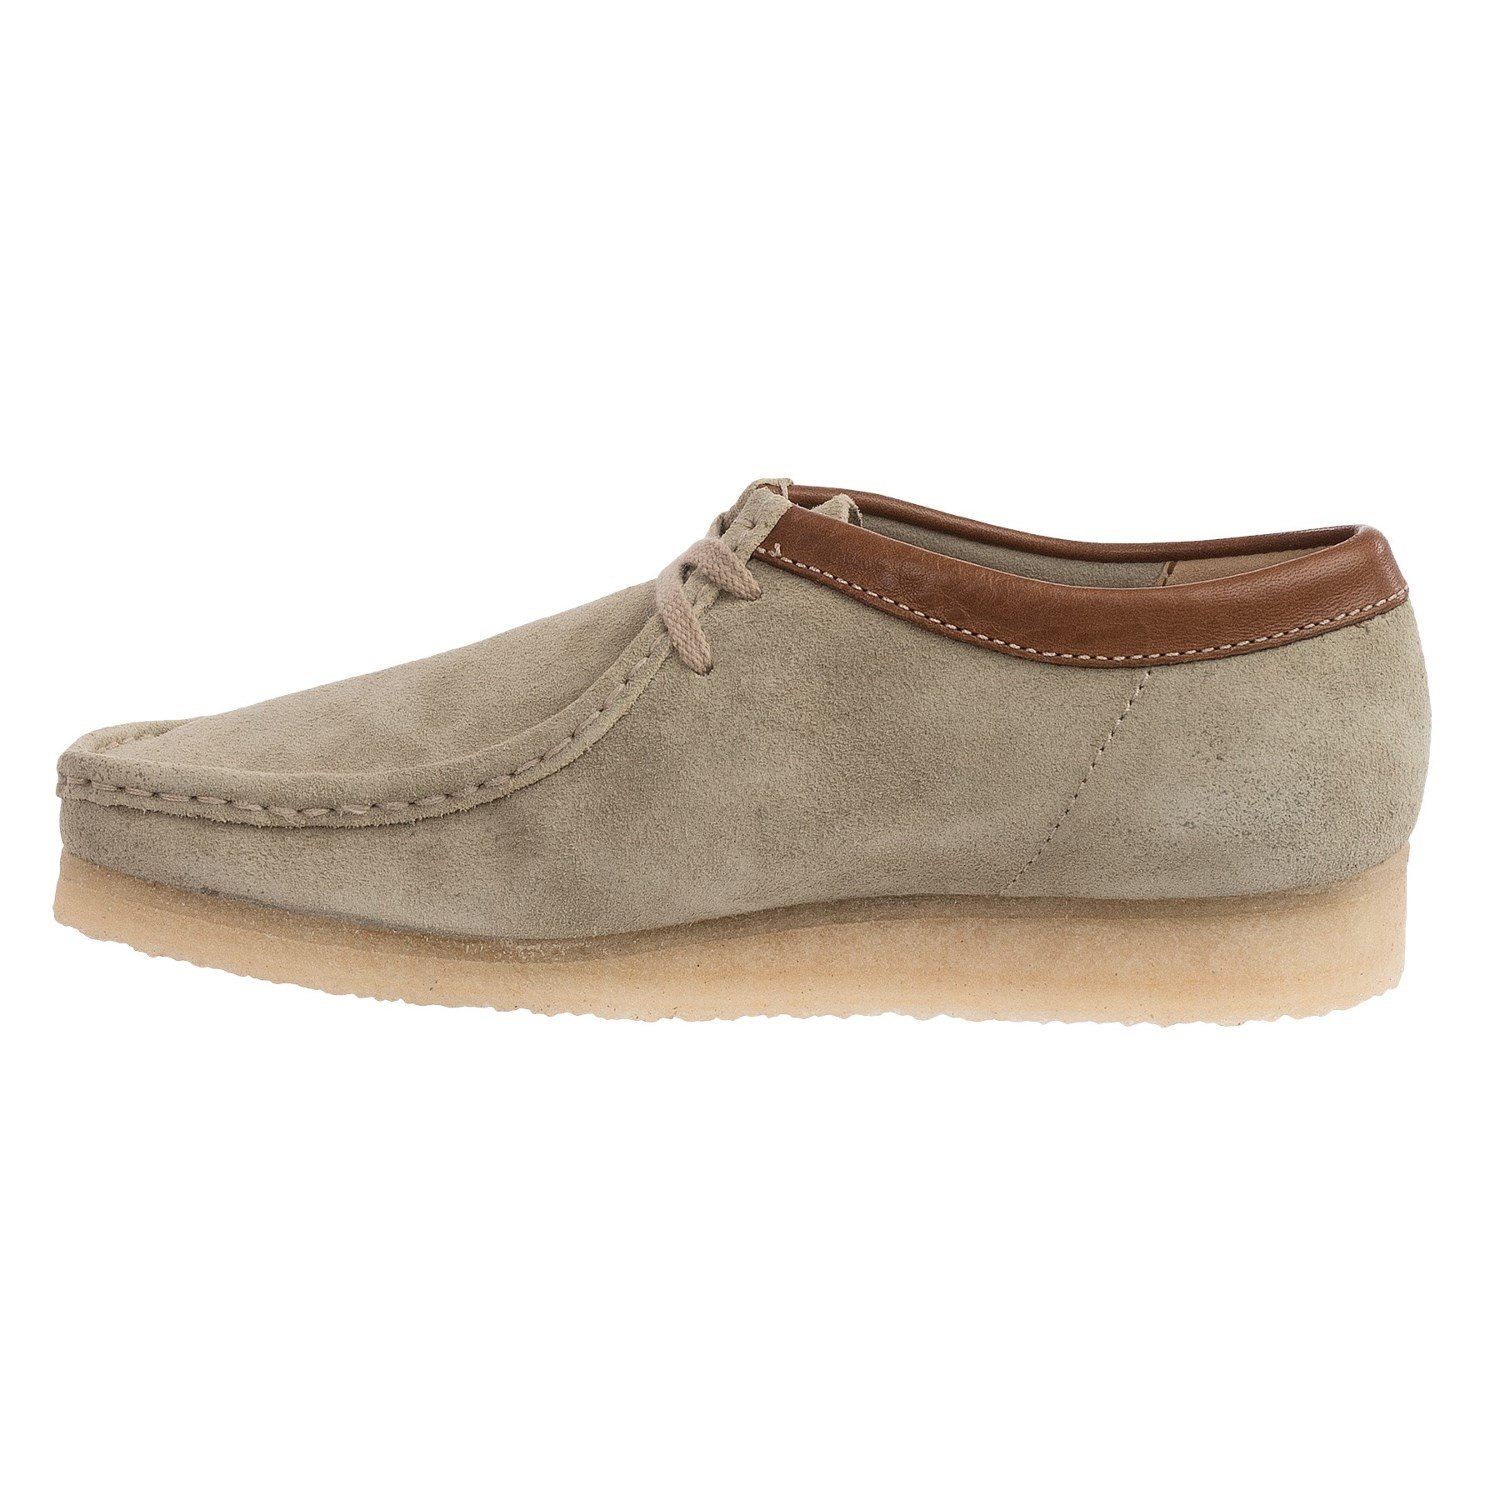 CLARKS SHOES. The official online shop for Clarks shoes. Discover the official Clarks site, featuring a variety of shoes for kids and adults. Explore a range of sizes and styles – .